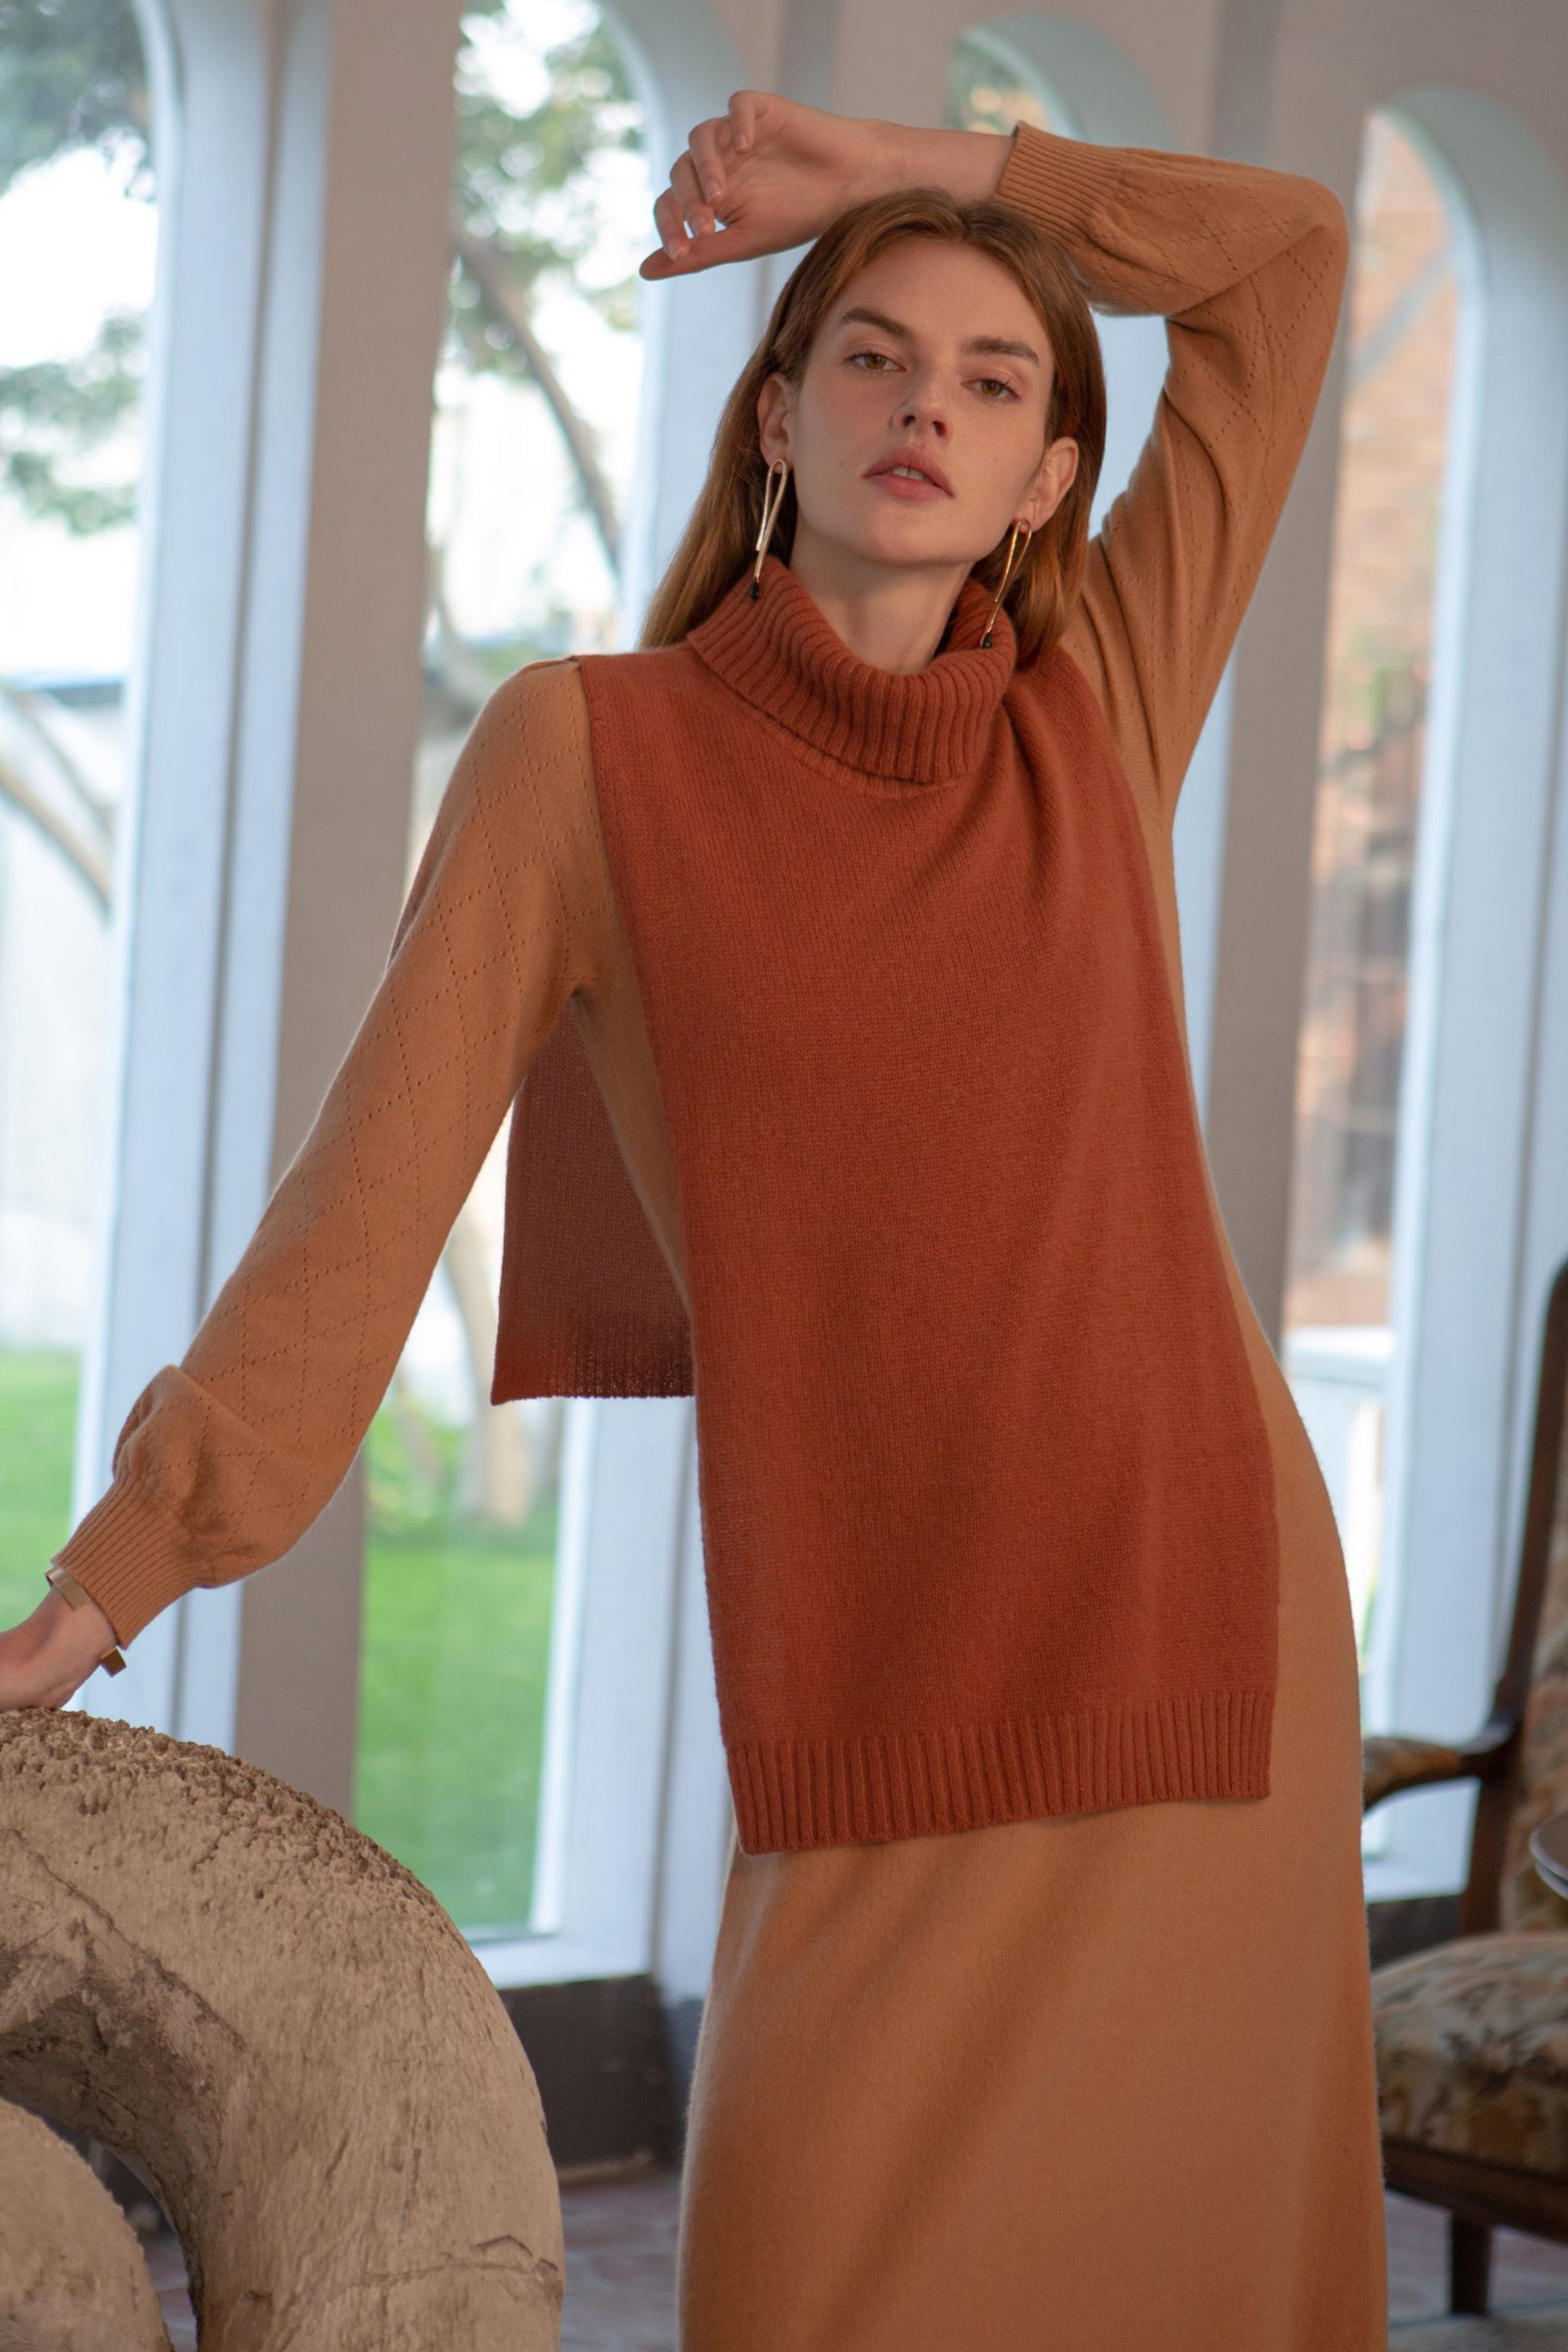 decky, cashmere turtleneck sweater, turtleneck sweater, cashmere sweater